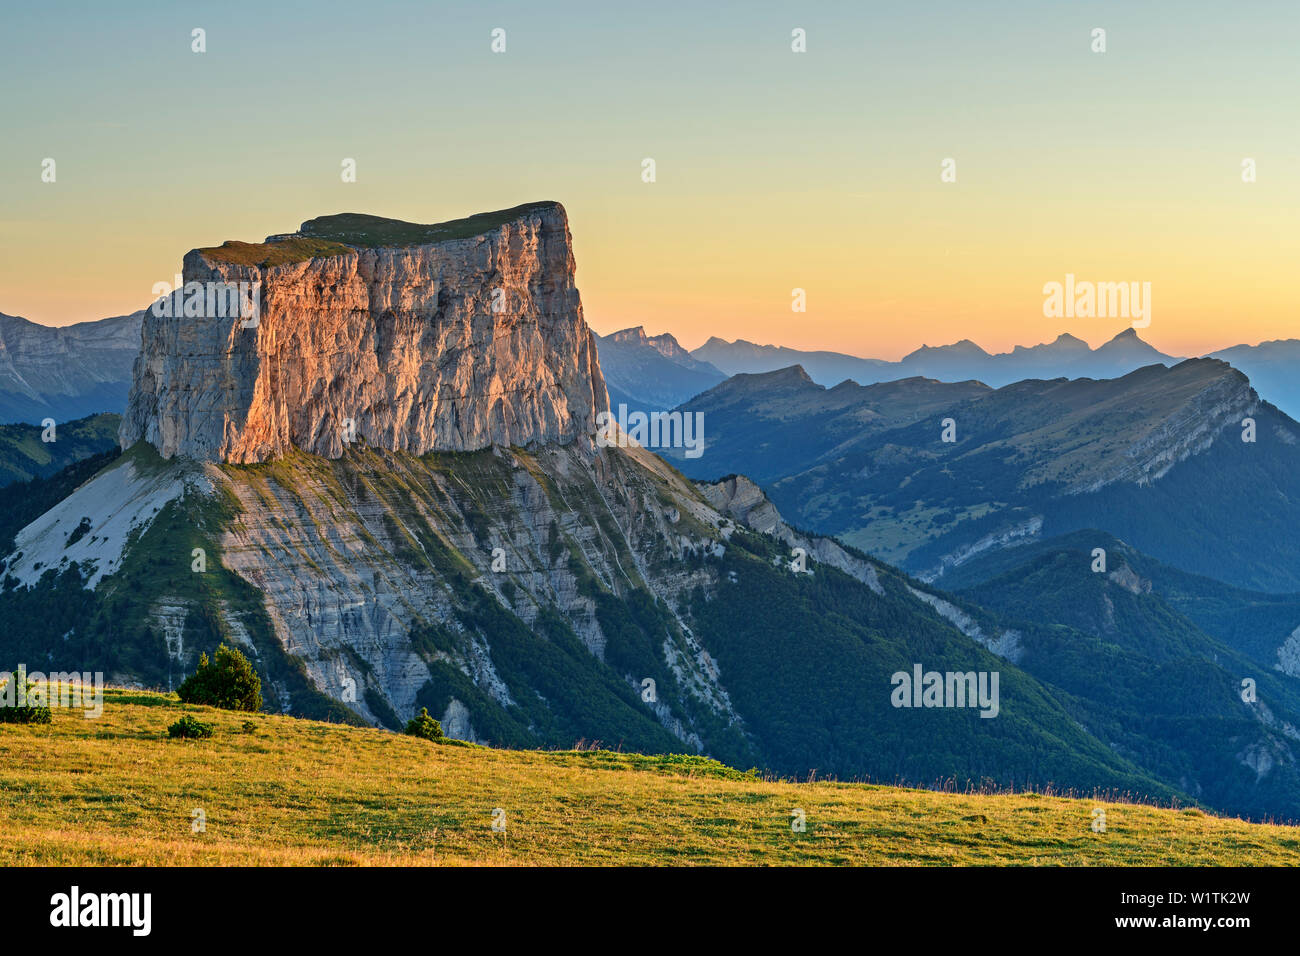 Mont Aiguille in the morning light, from the Tête Chevalier, Vercors, Dauphine, Dauphine, Isère, France - Stock Image